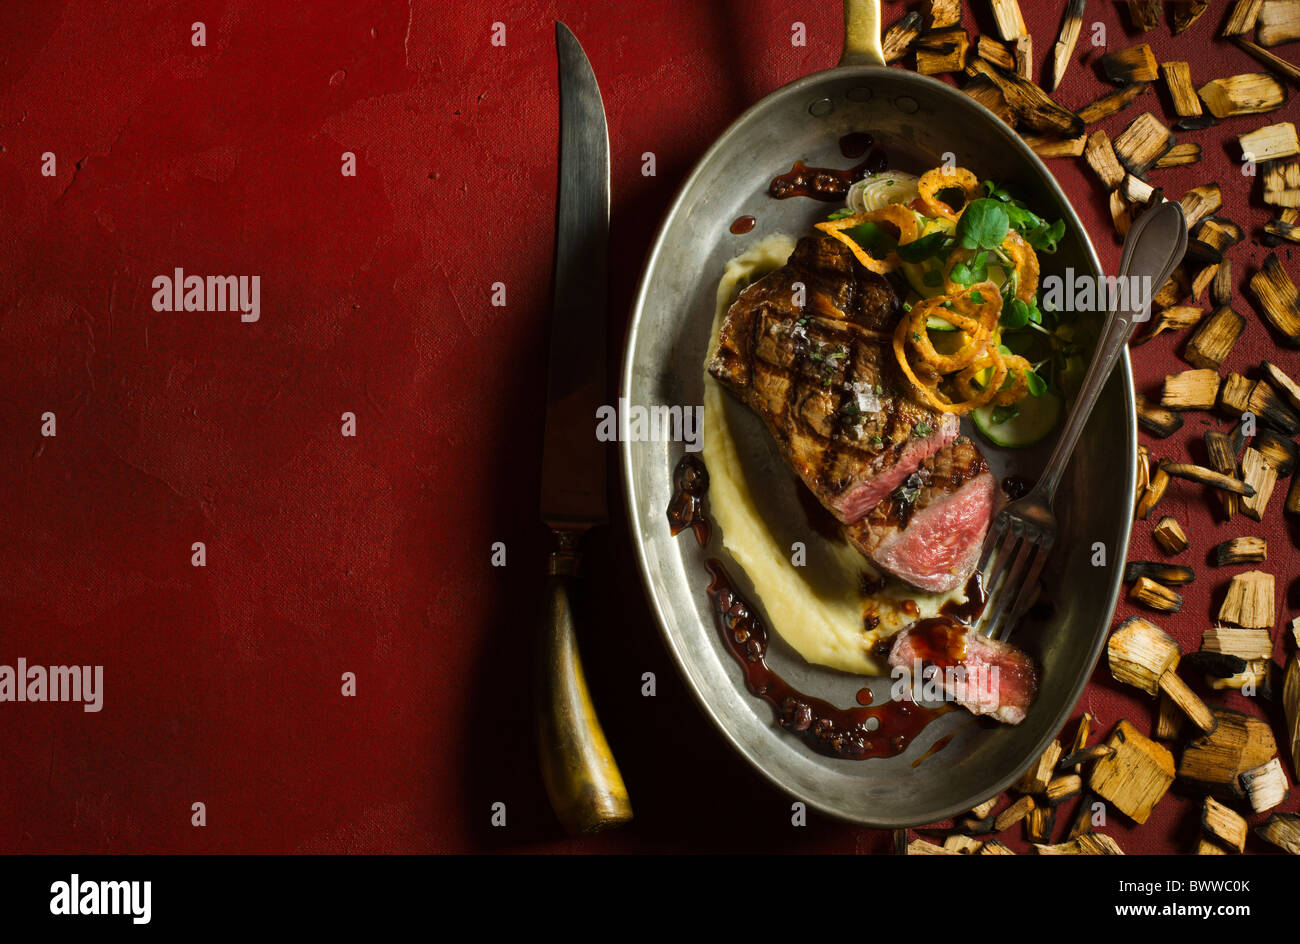 Ribeye of Beef, poached in Duck Fat and Grilled with Mesquite Wood Chips, served with Potato Purée, Summer - Stock Image